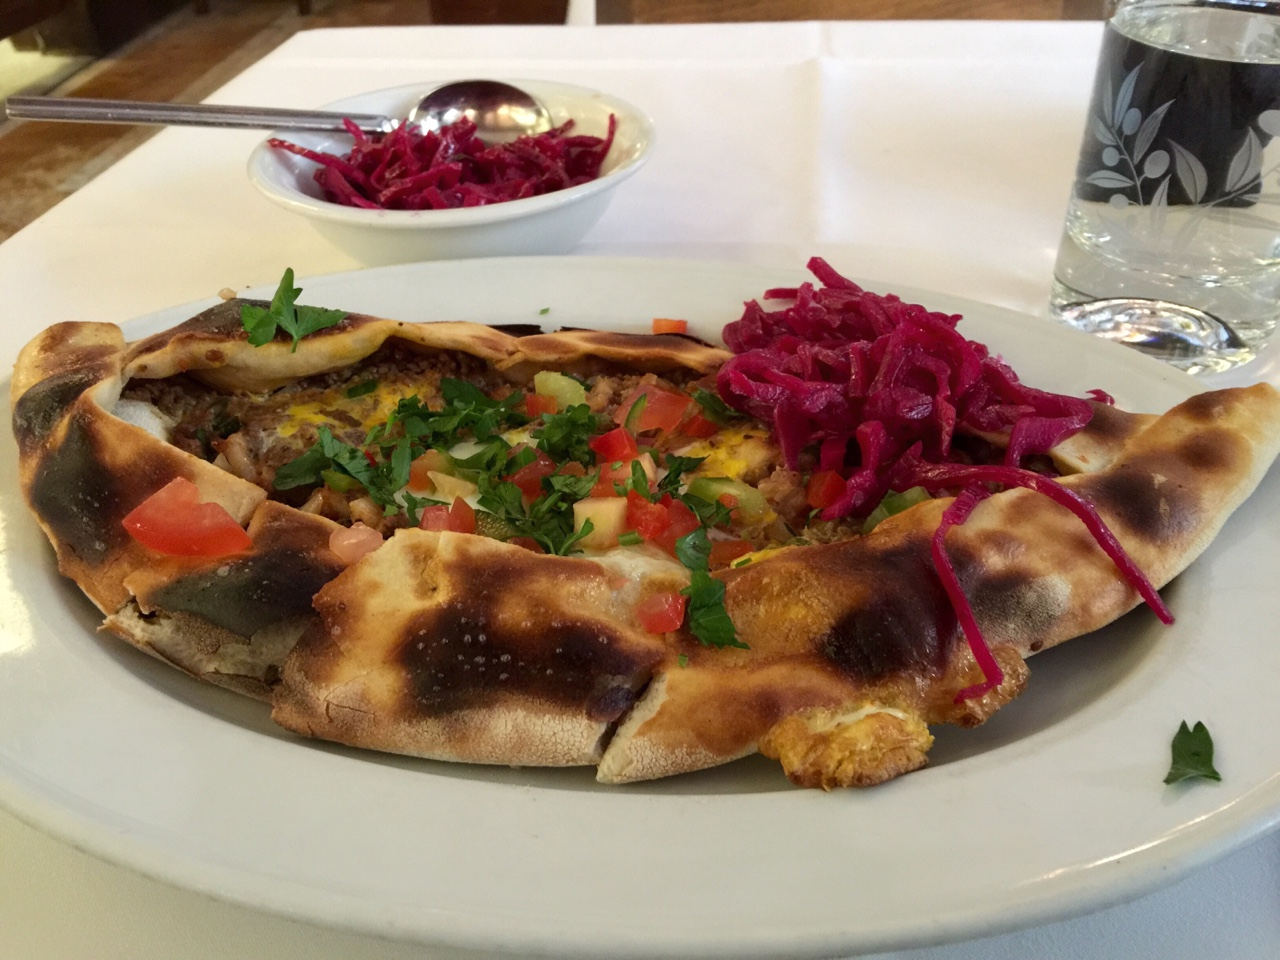 This is a Pide, a Turkish dish from the gem of a restaurant (Tas Pide) that I found near the Shakespeare Globe theatre. Delicious!